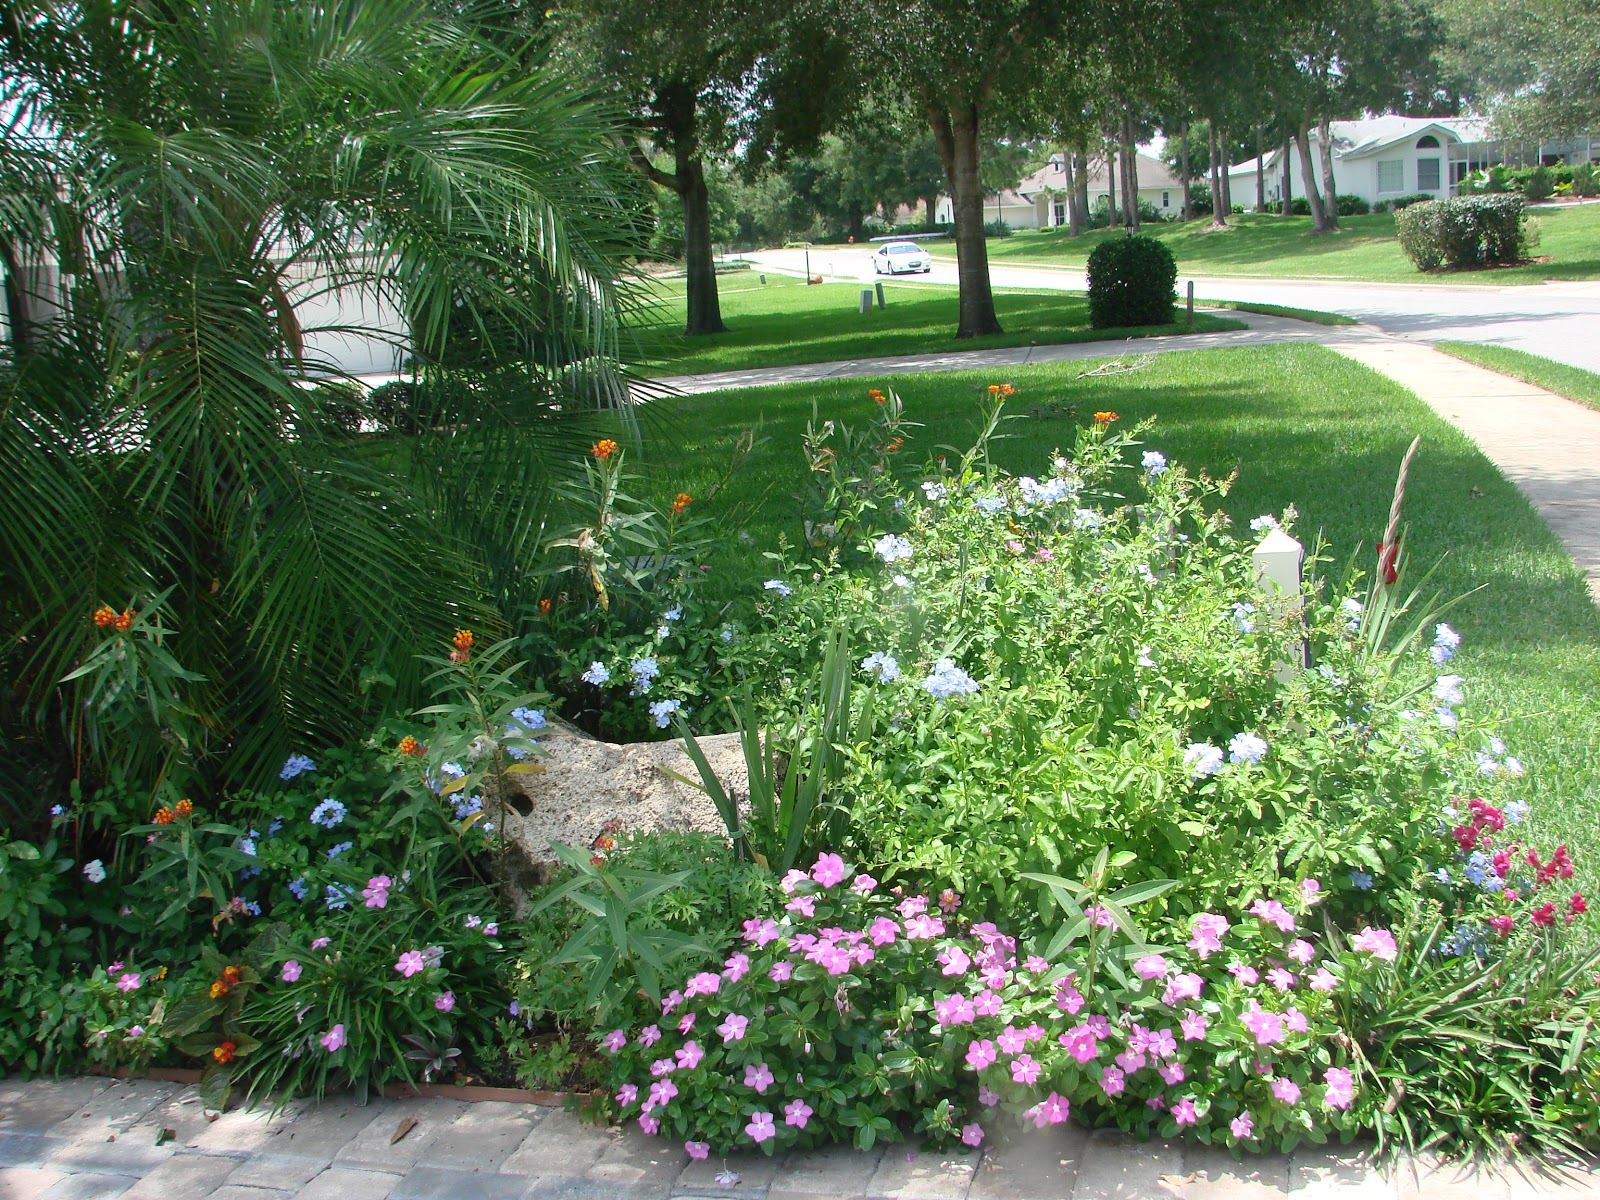 Earth Shattering Gardening: Creating A Florida Cottage Garden on Bungalow Backyard Ideas id=98549